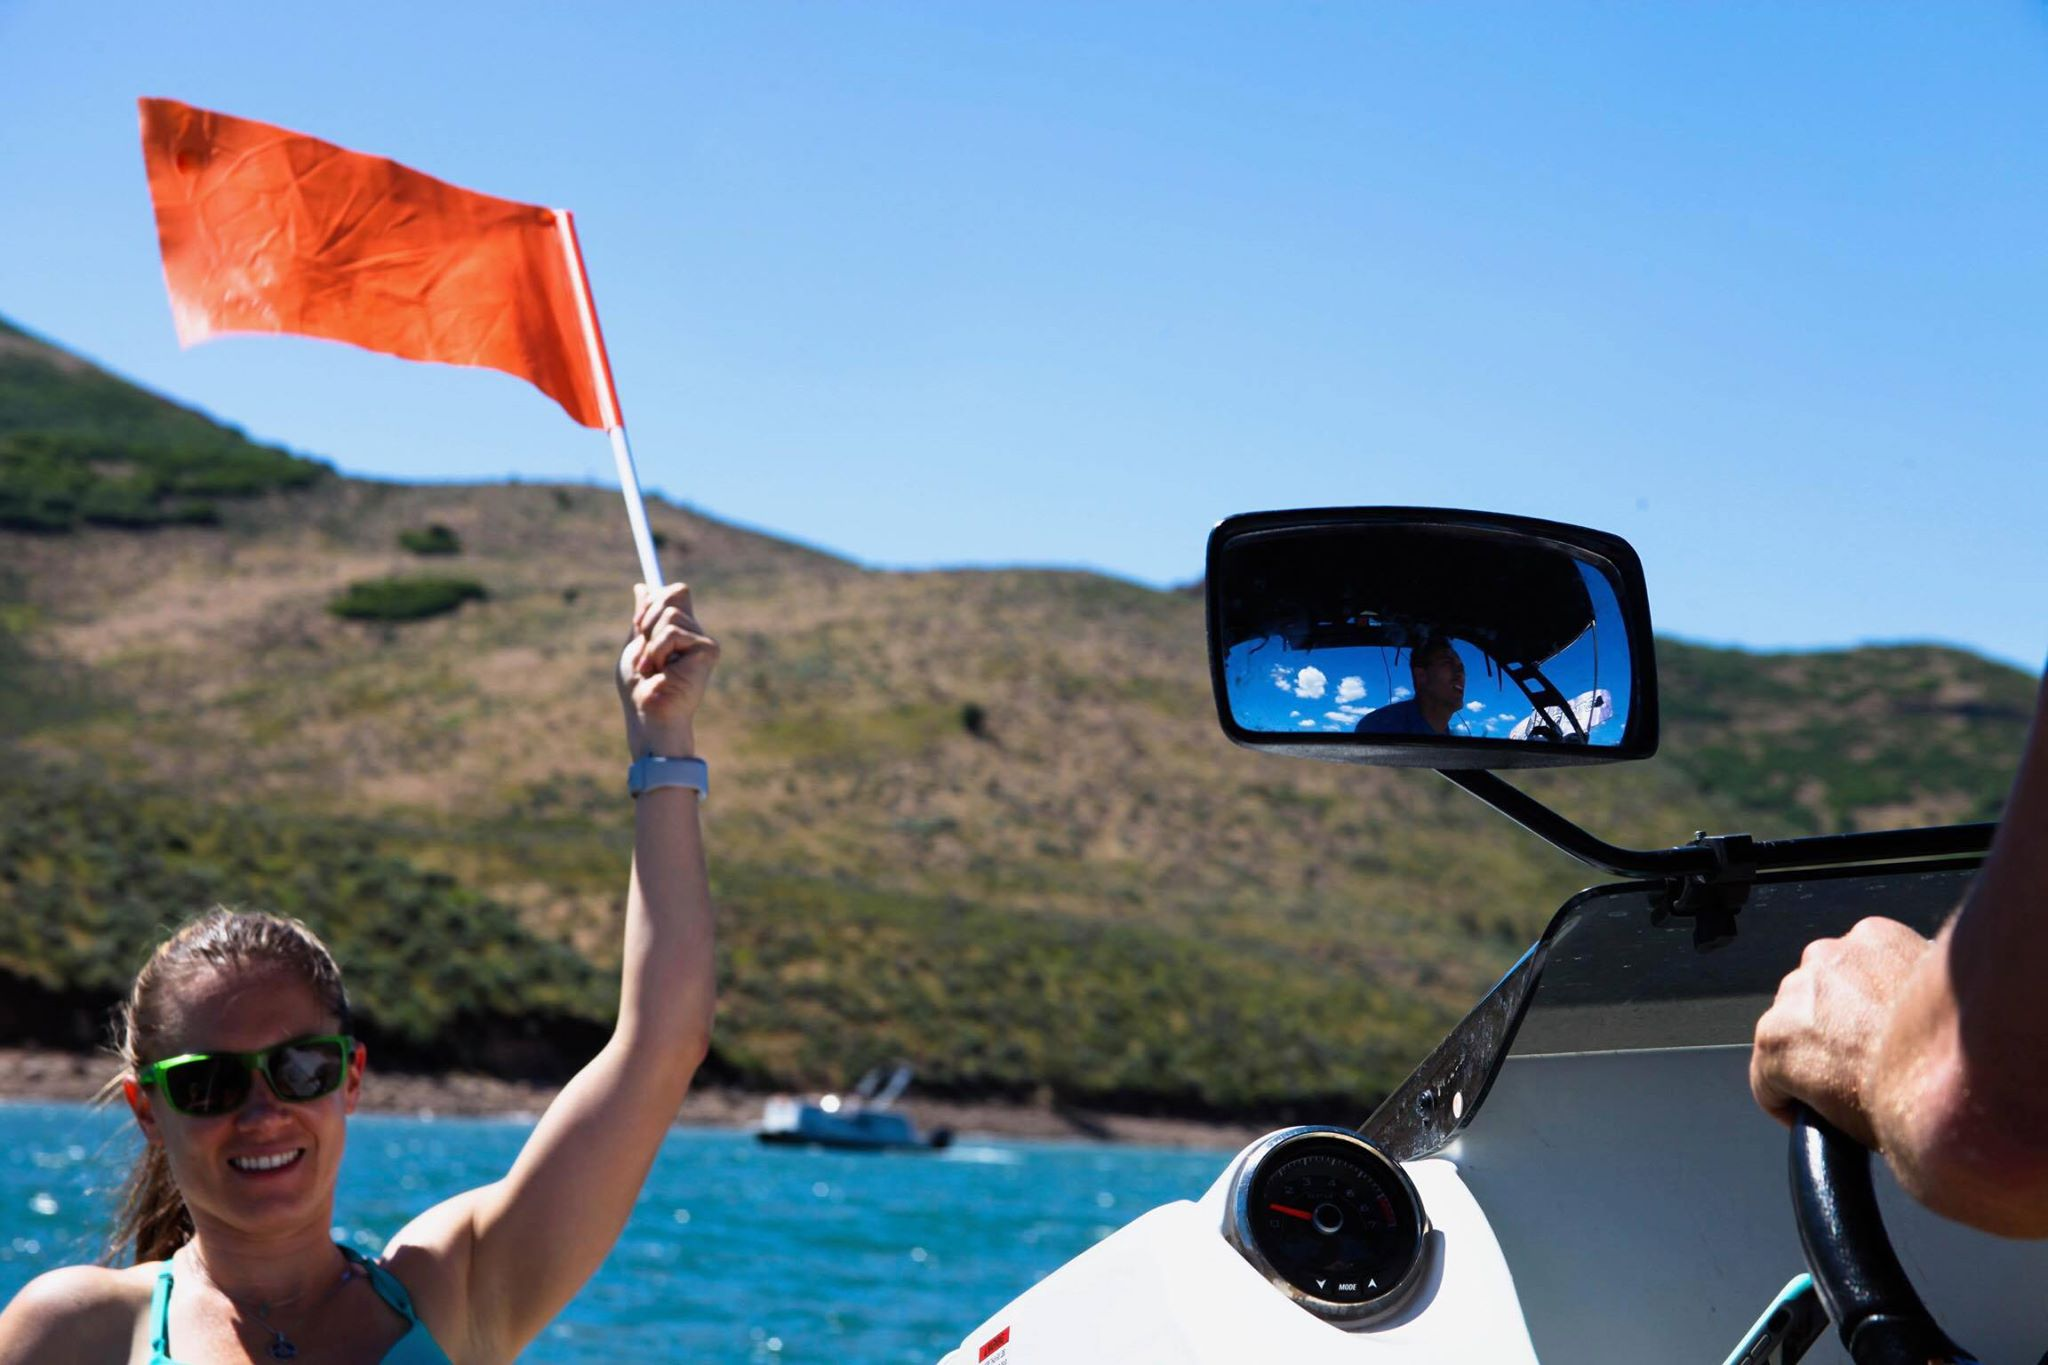 Orange flags up during our boat rentals